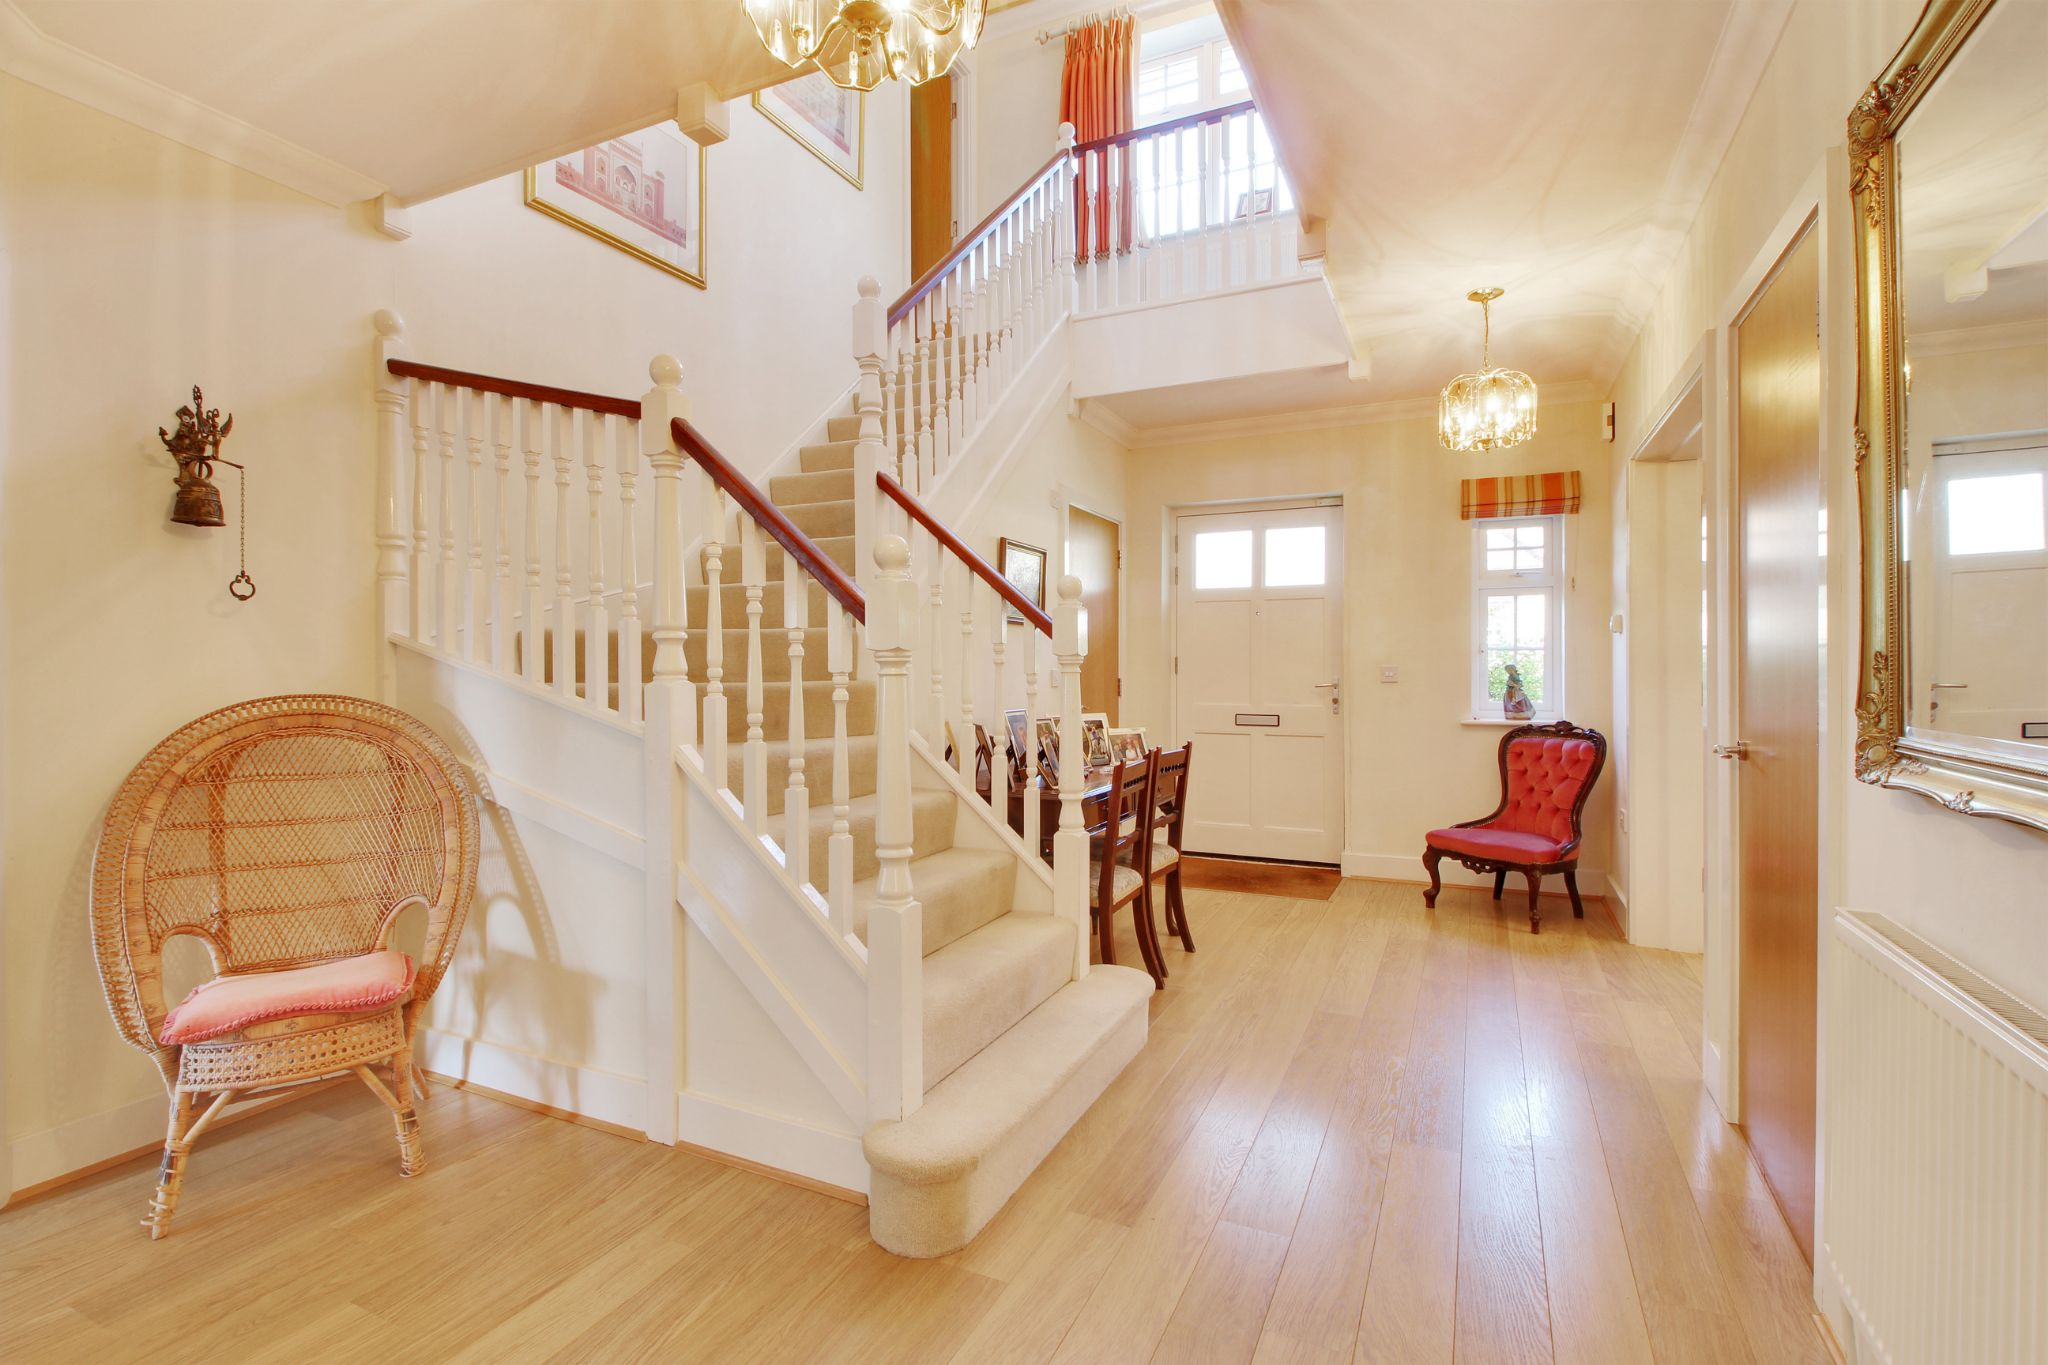 5 bedroom detached house Sold in Sevenoaks - Photograph 7